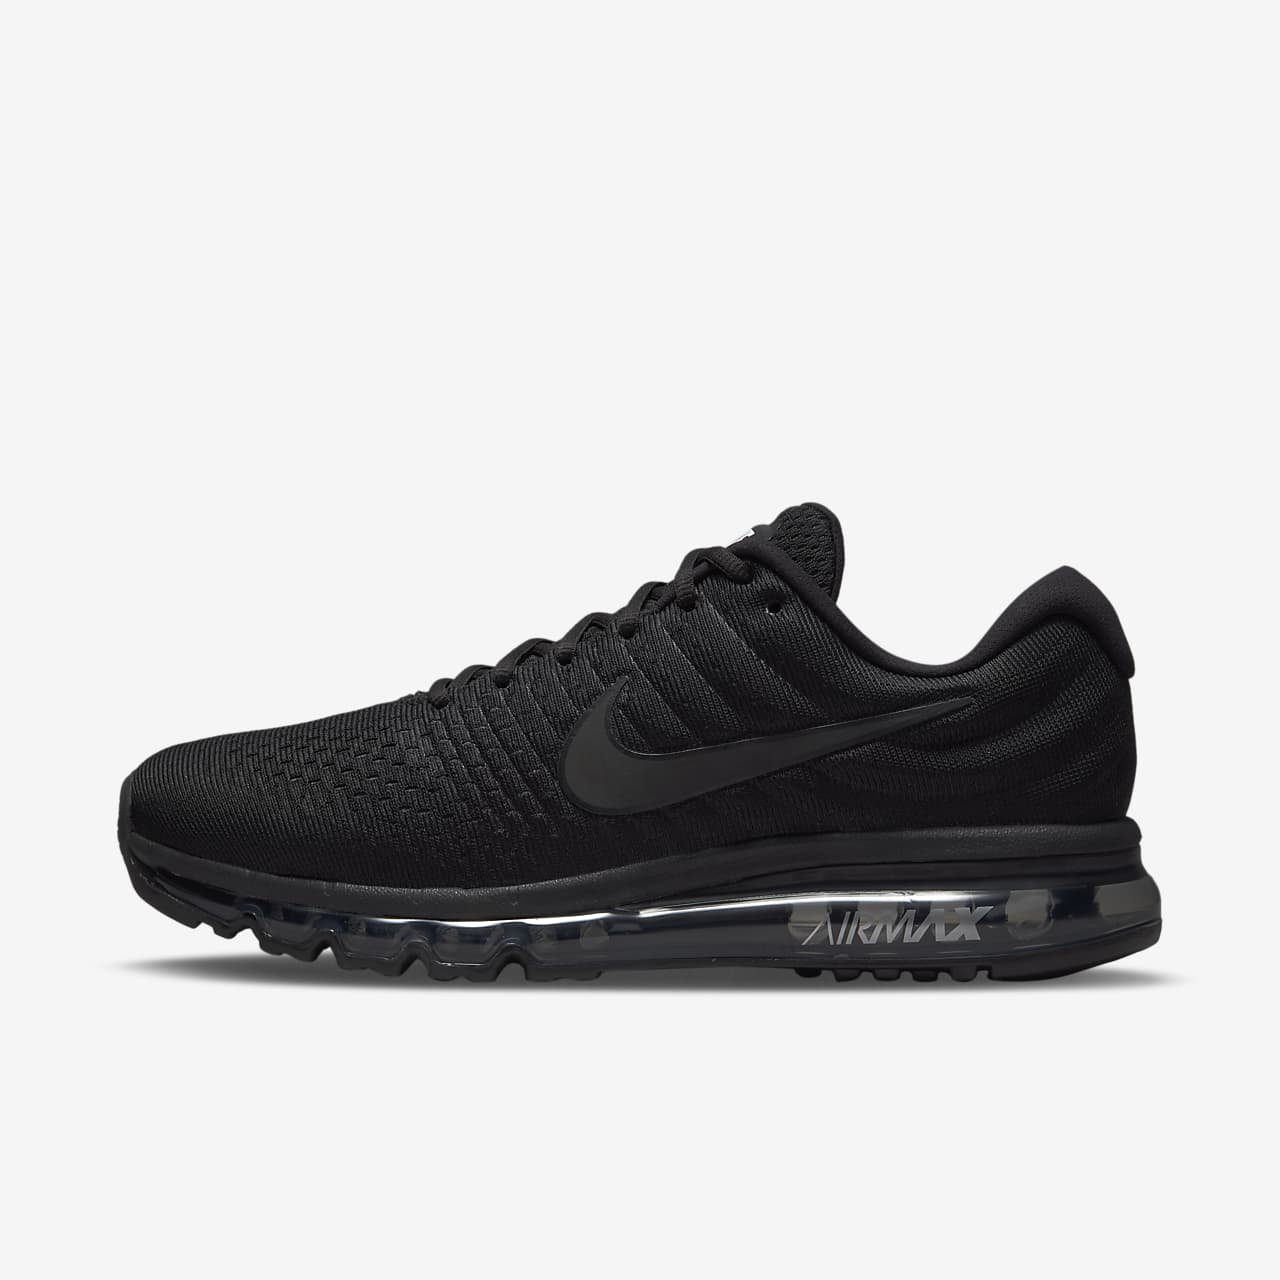 nike schuhe herren 2017 air max plus